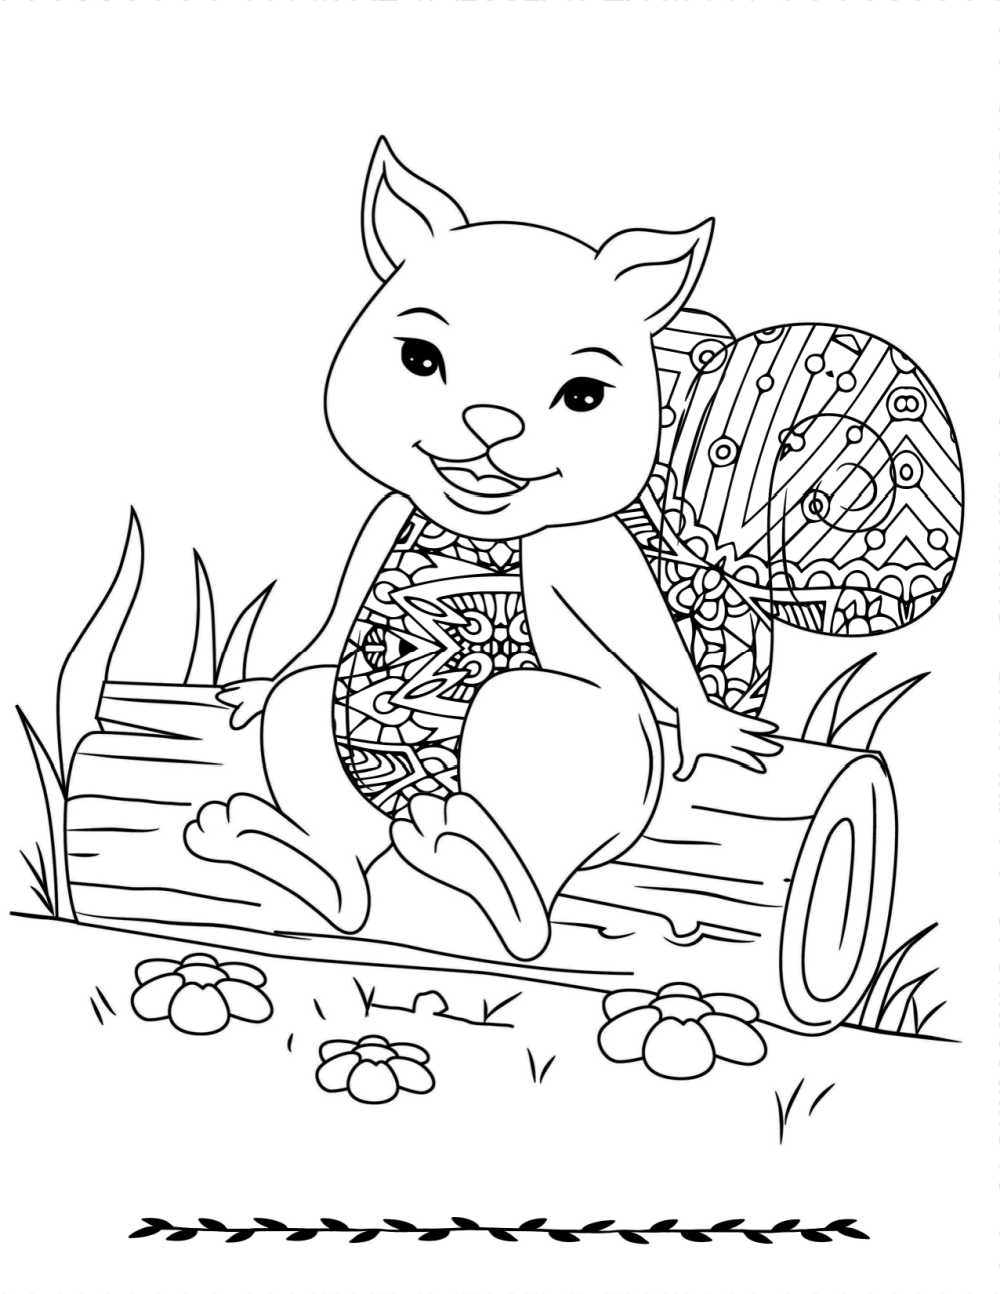 When you want to color a cute an uplifting picture, download this free printable squirrel on a log coloring page.